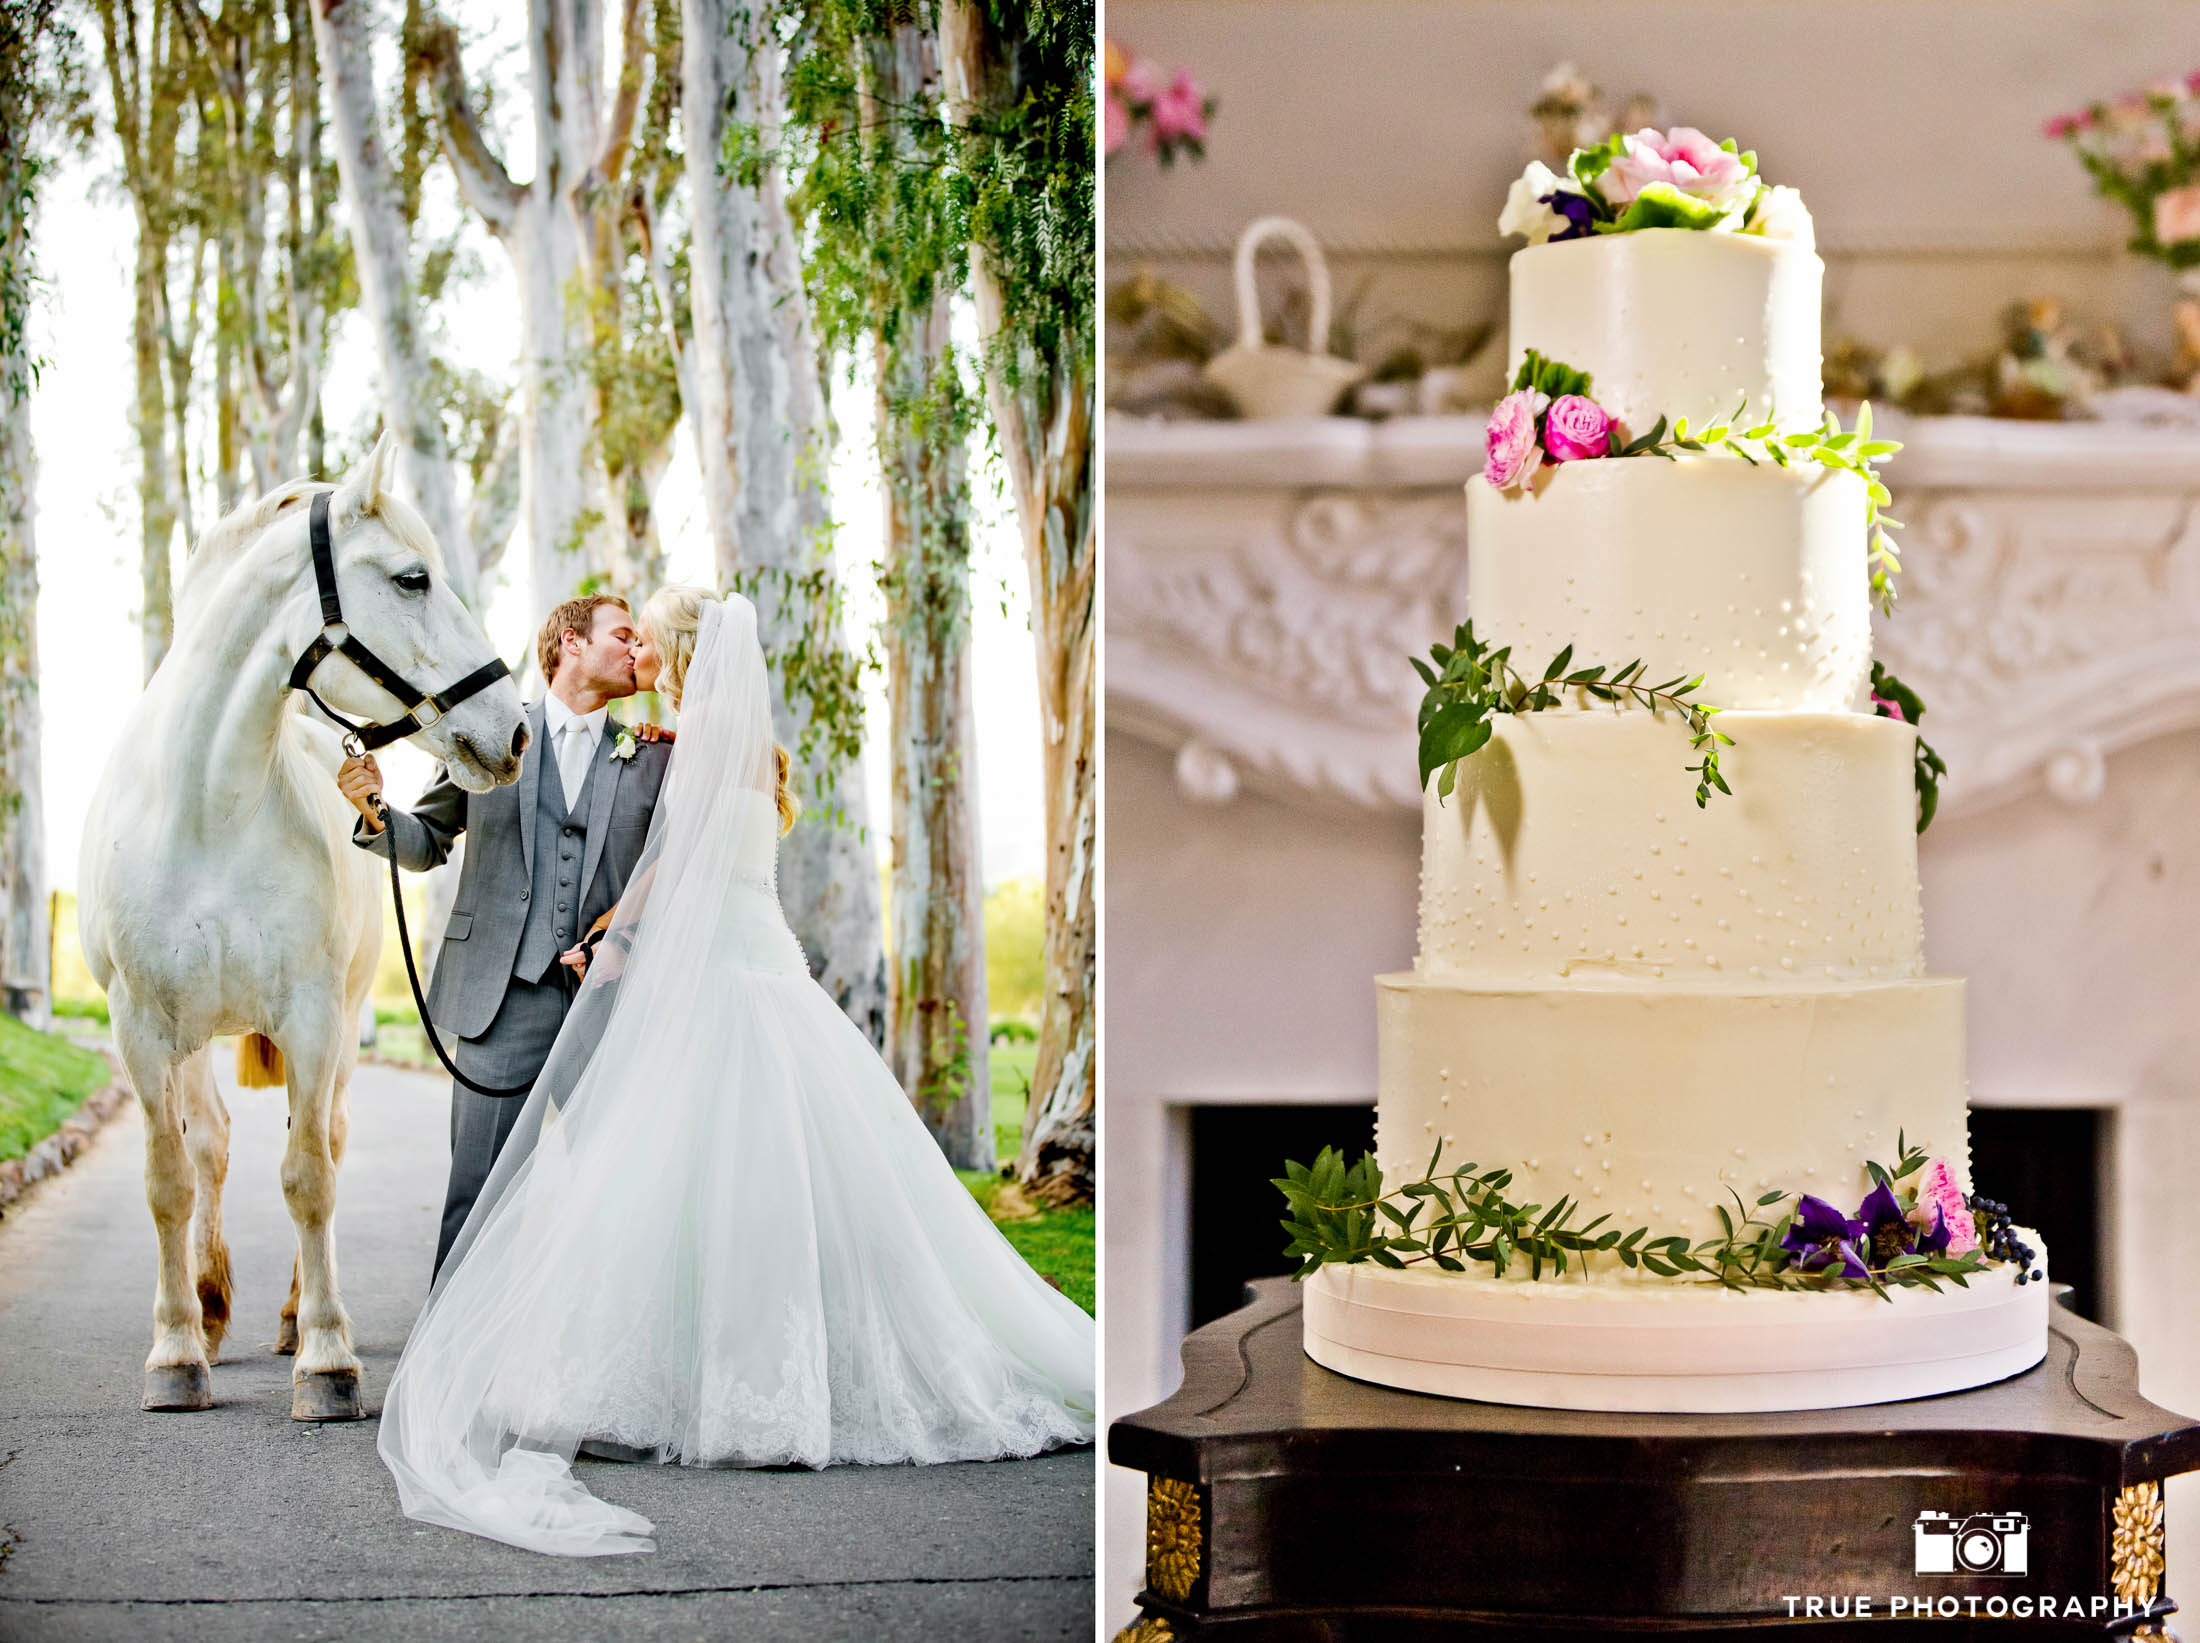 Couple with horse and rustic wedding cake